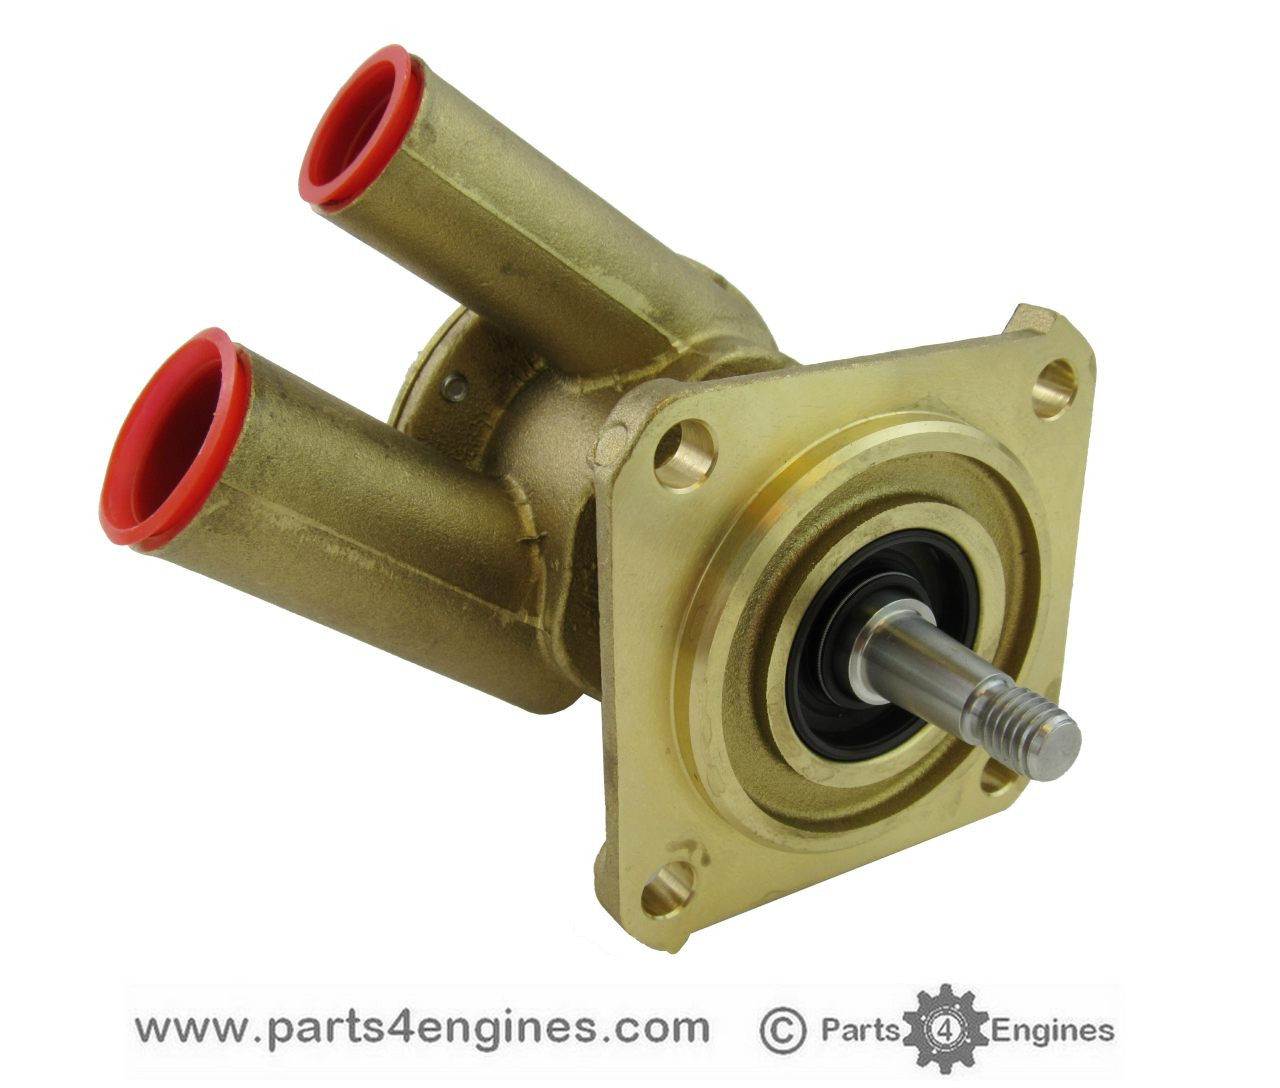 Volvo Penta D2-55 Raw Water Pump, from parts4engines.com